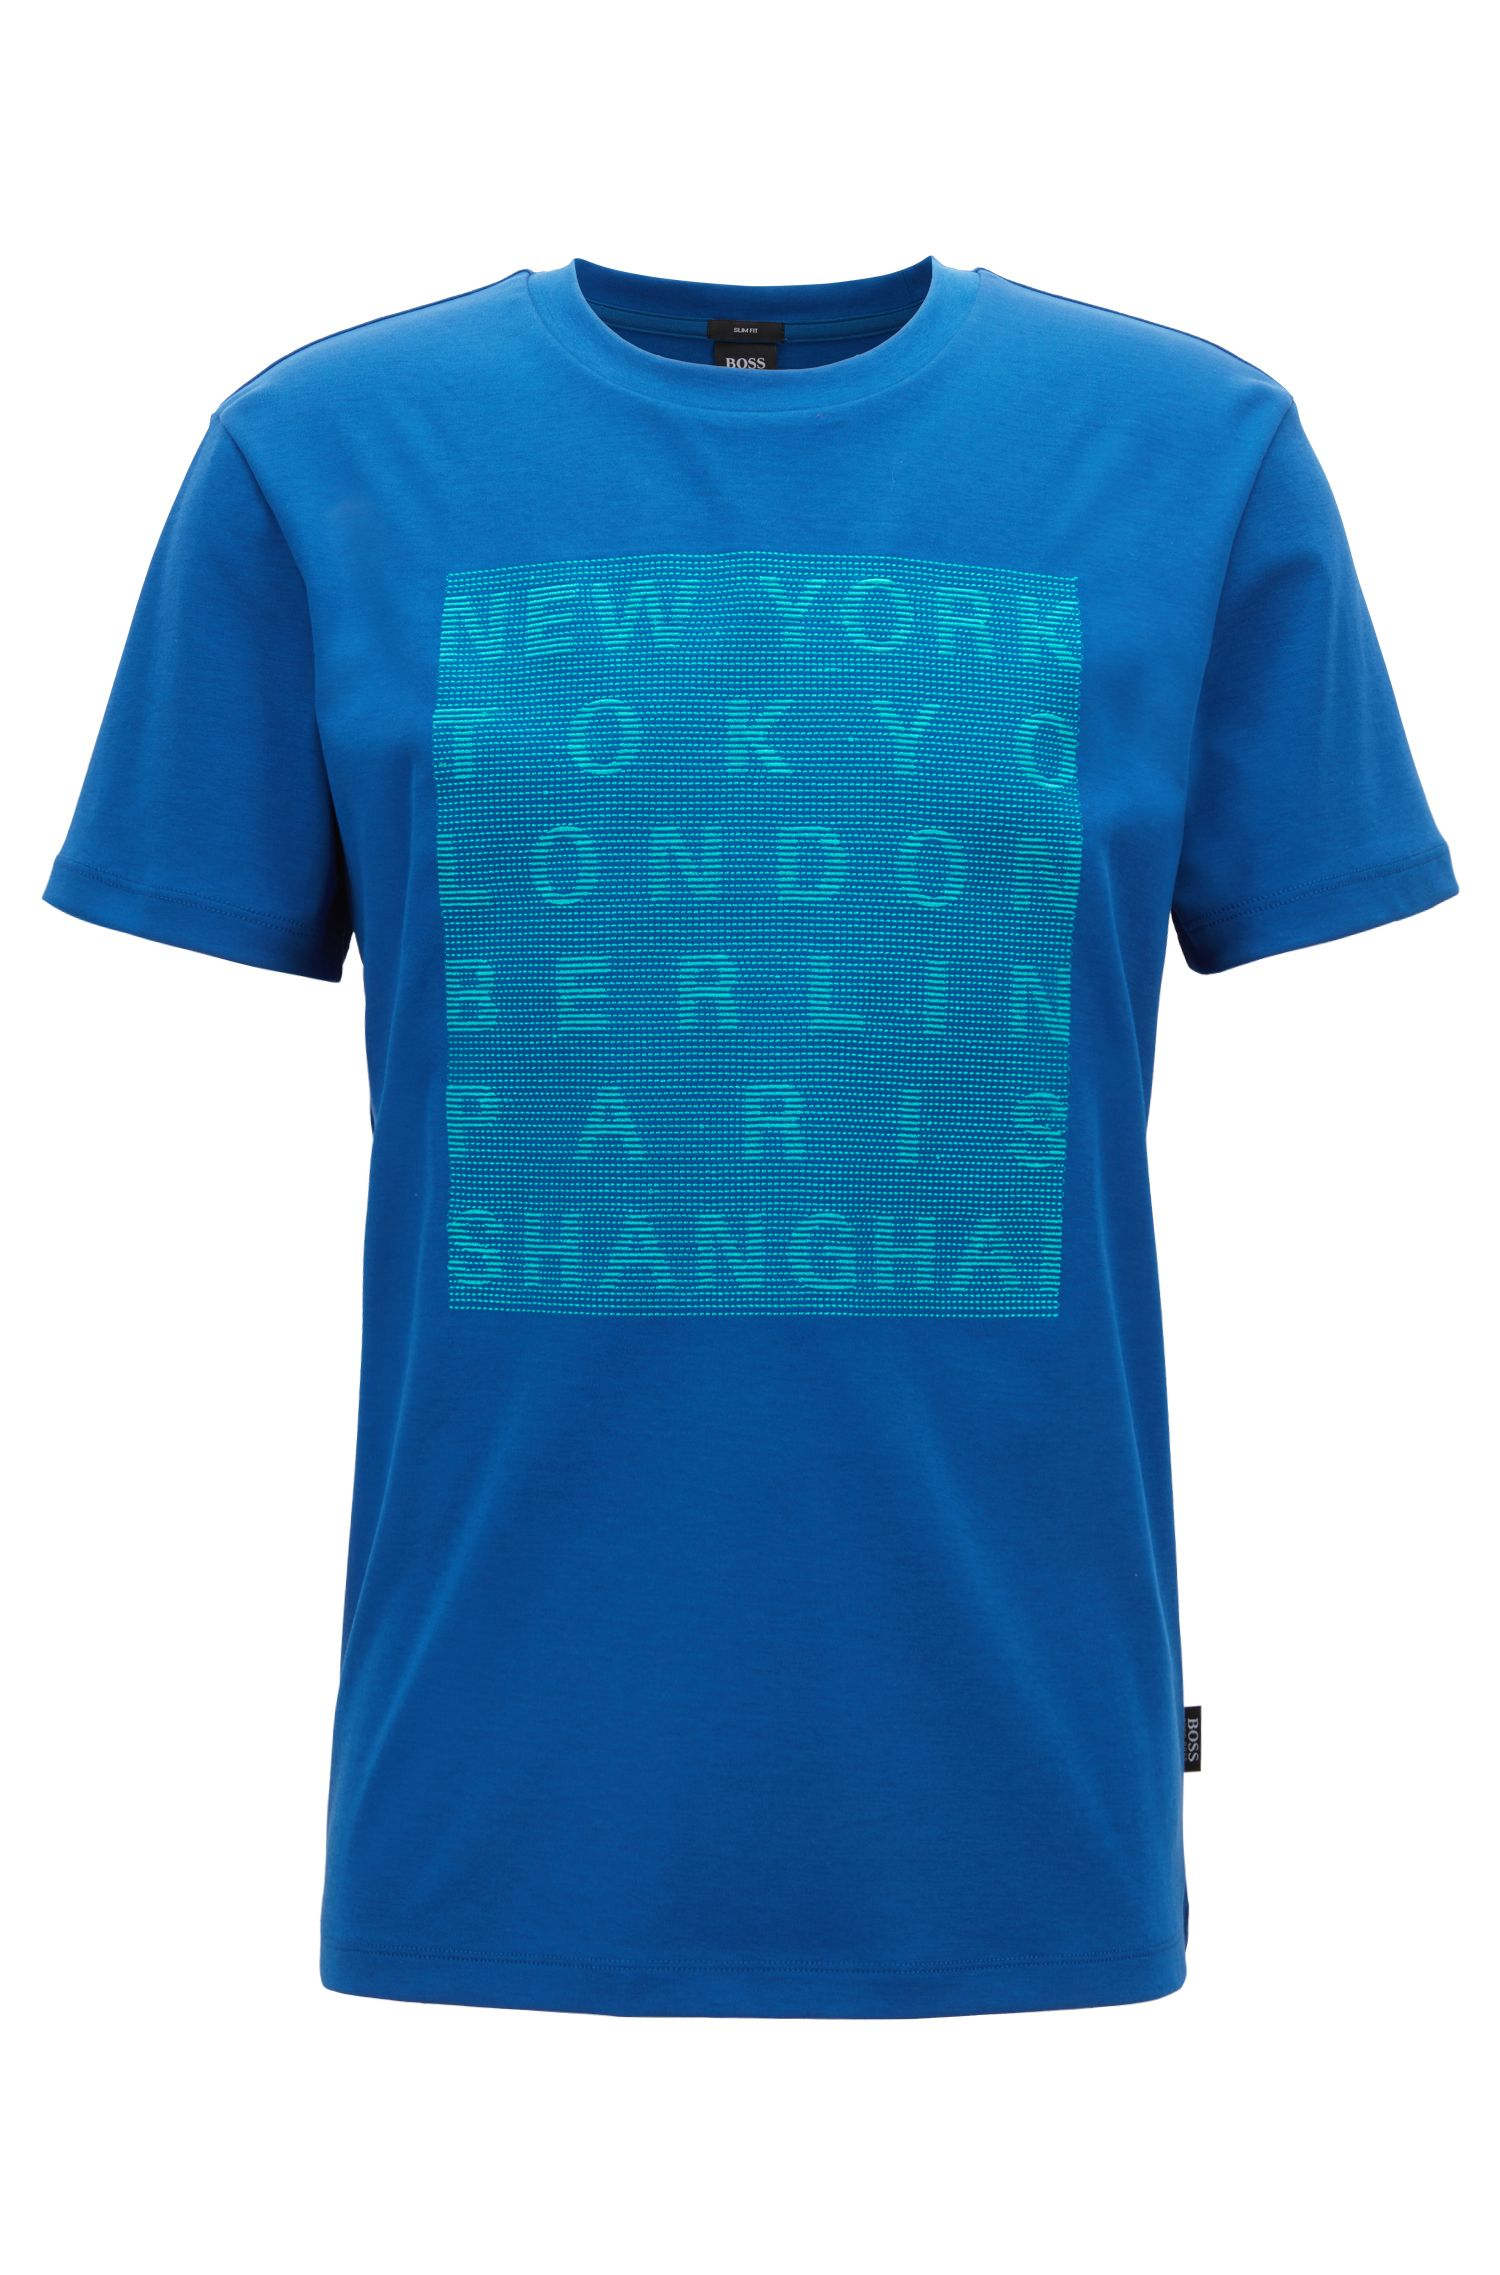 Slim-fit cotton T-shirt with stitched graphic, Open Blue